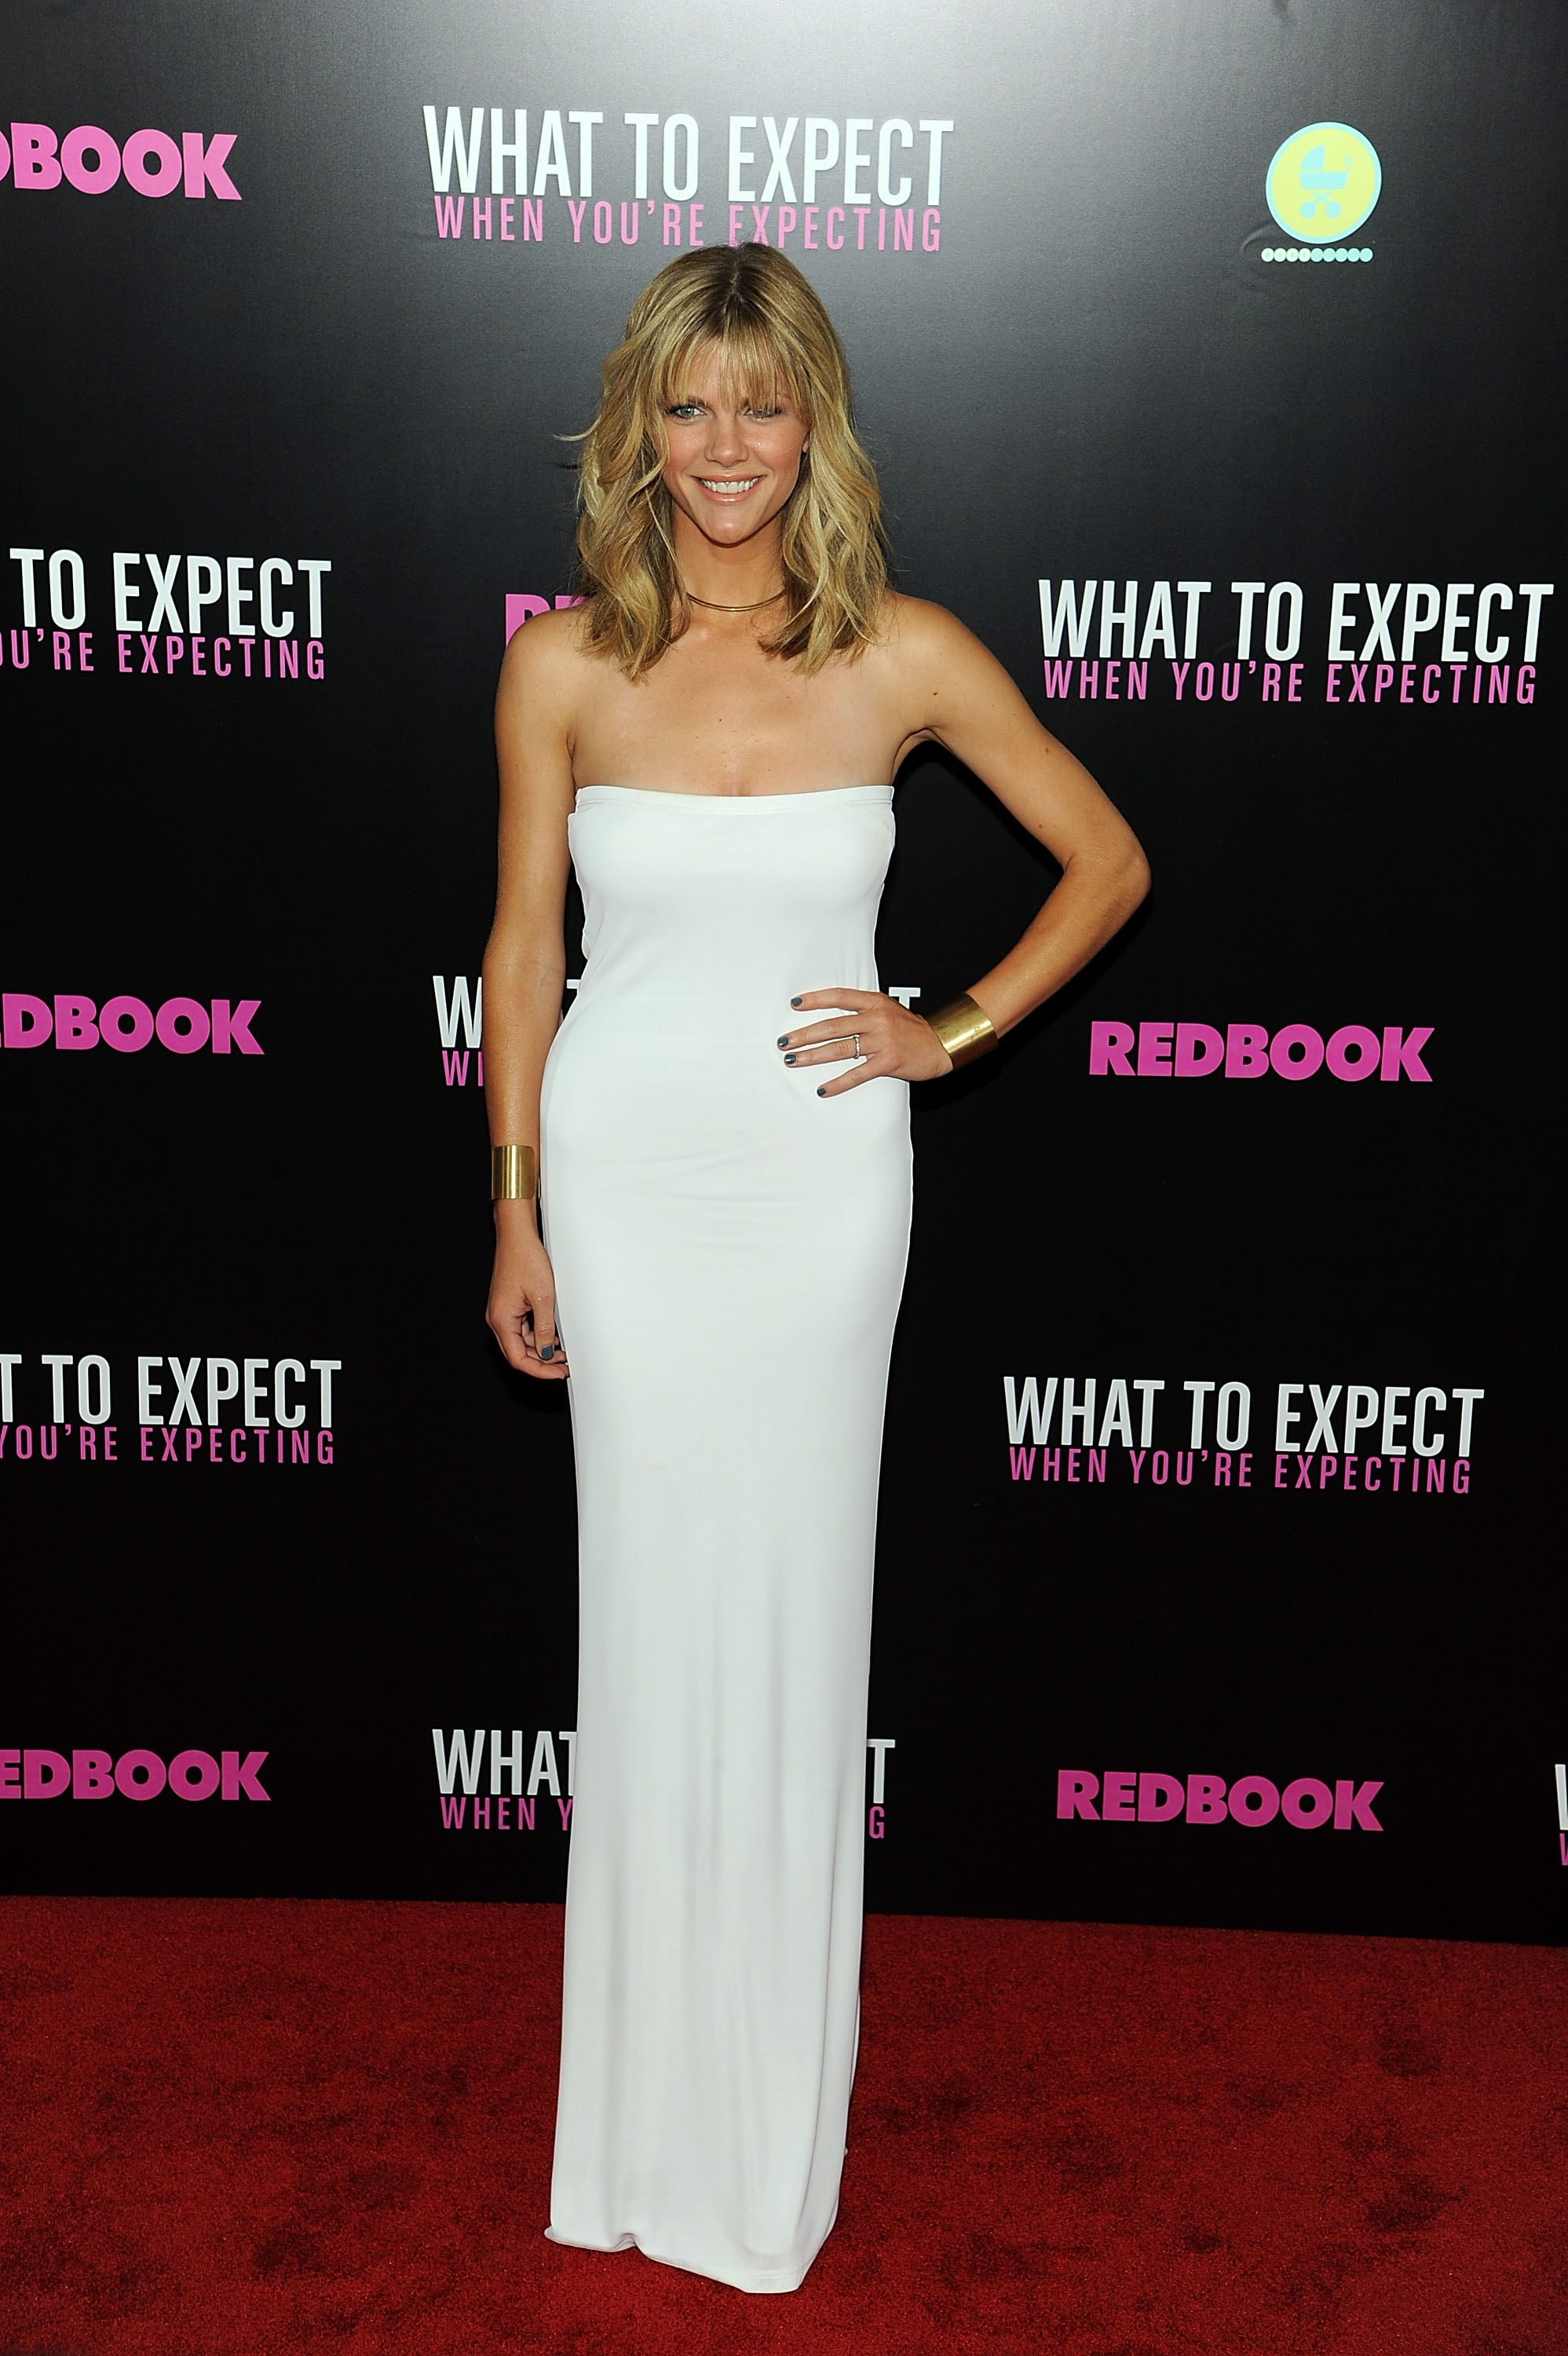 Brooklyn Decker in White Calvin Klein at 2012 What to Expect When You're Expecting NYC Screening